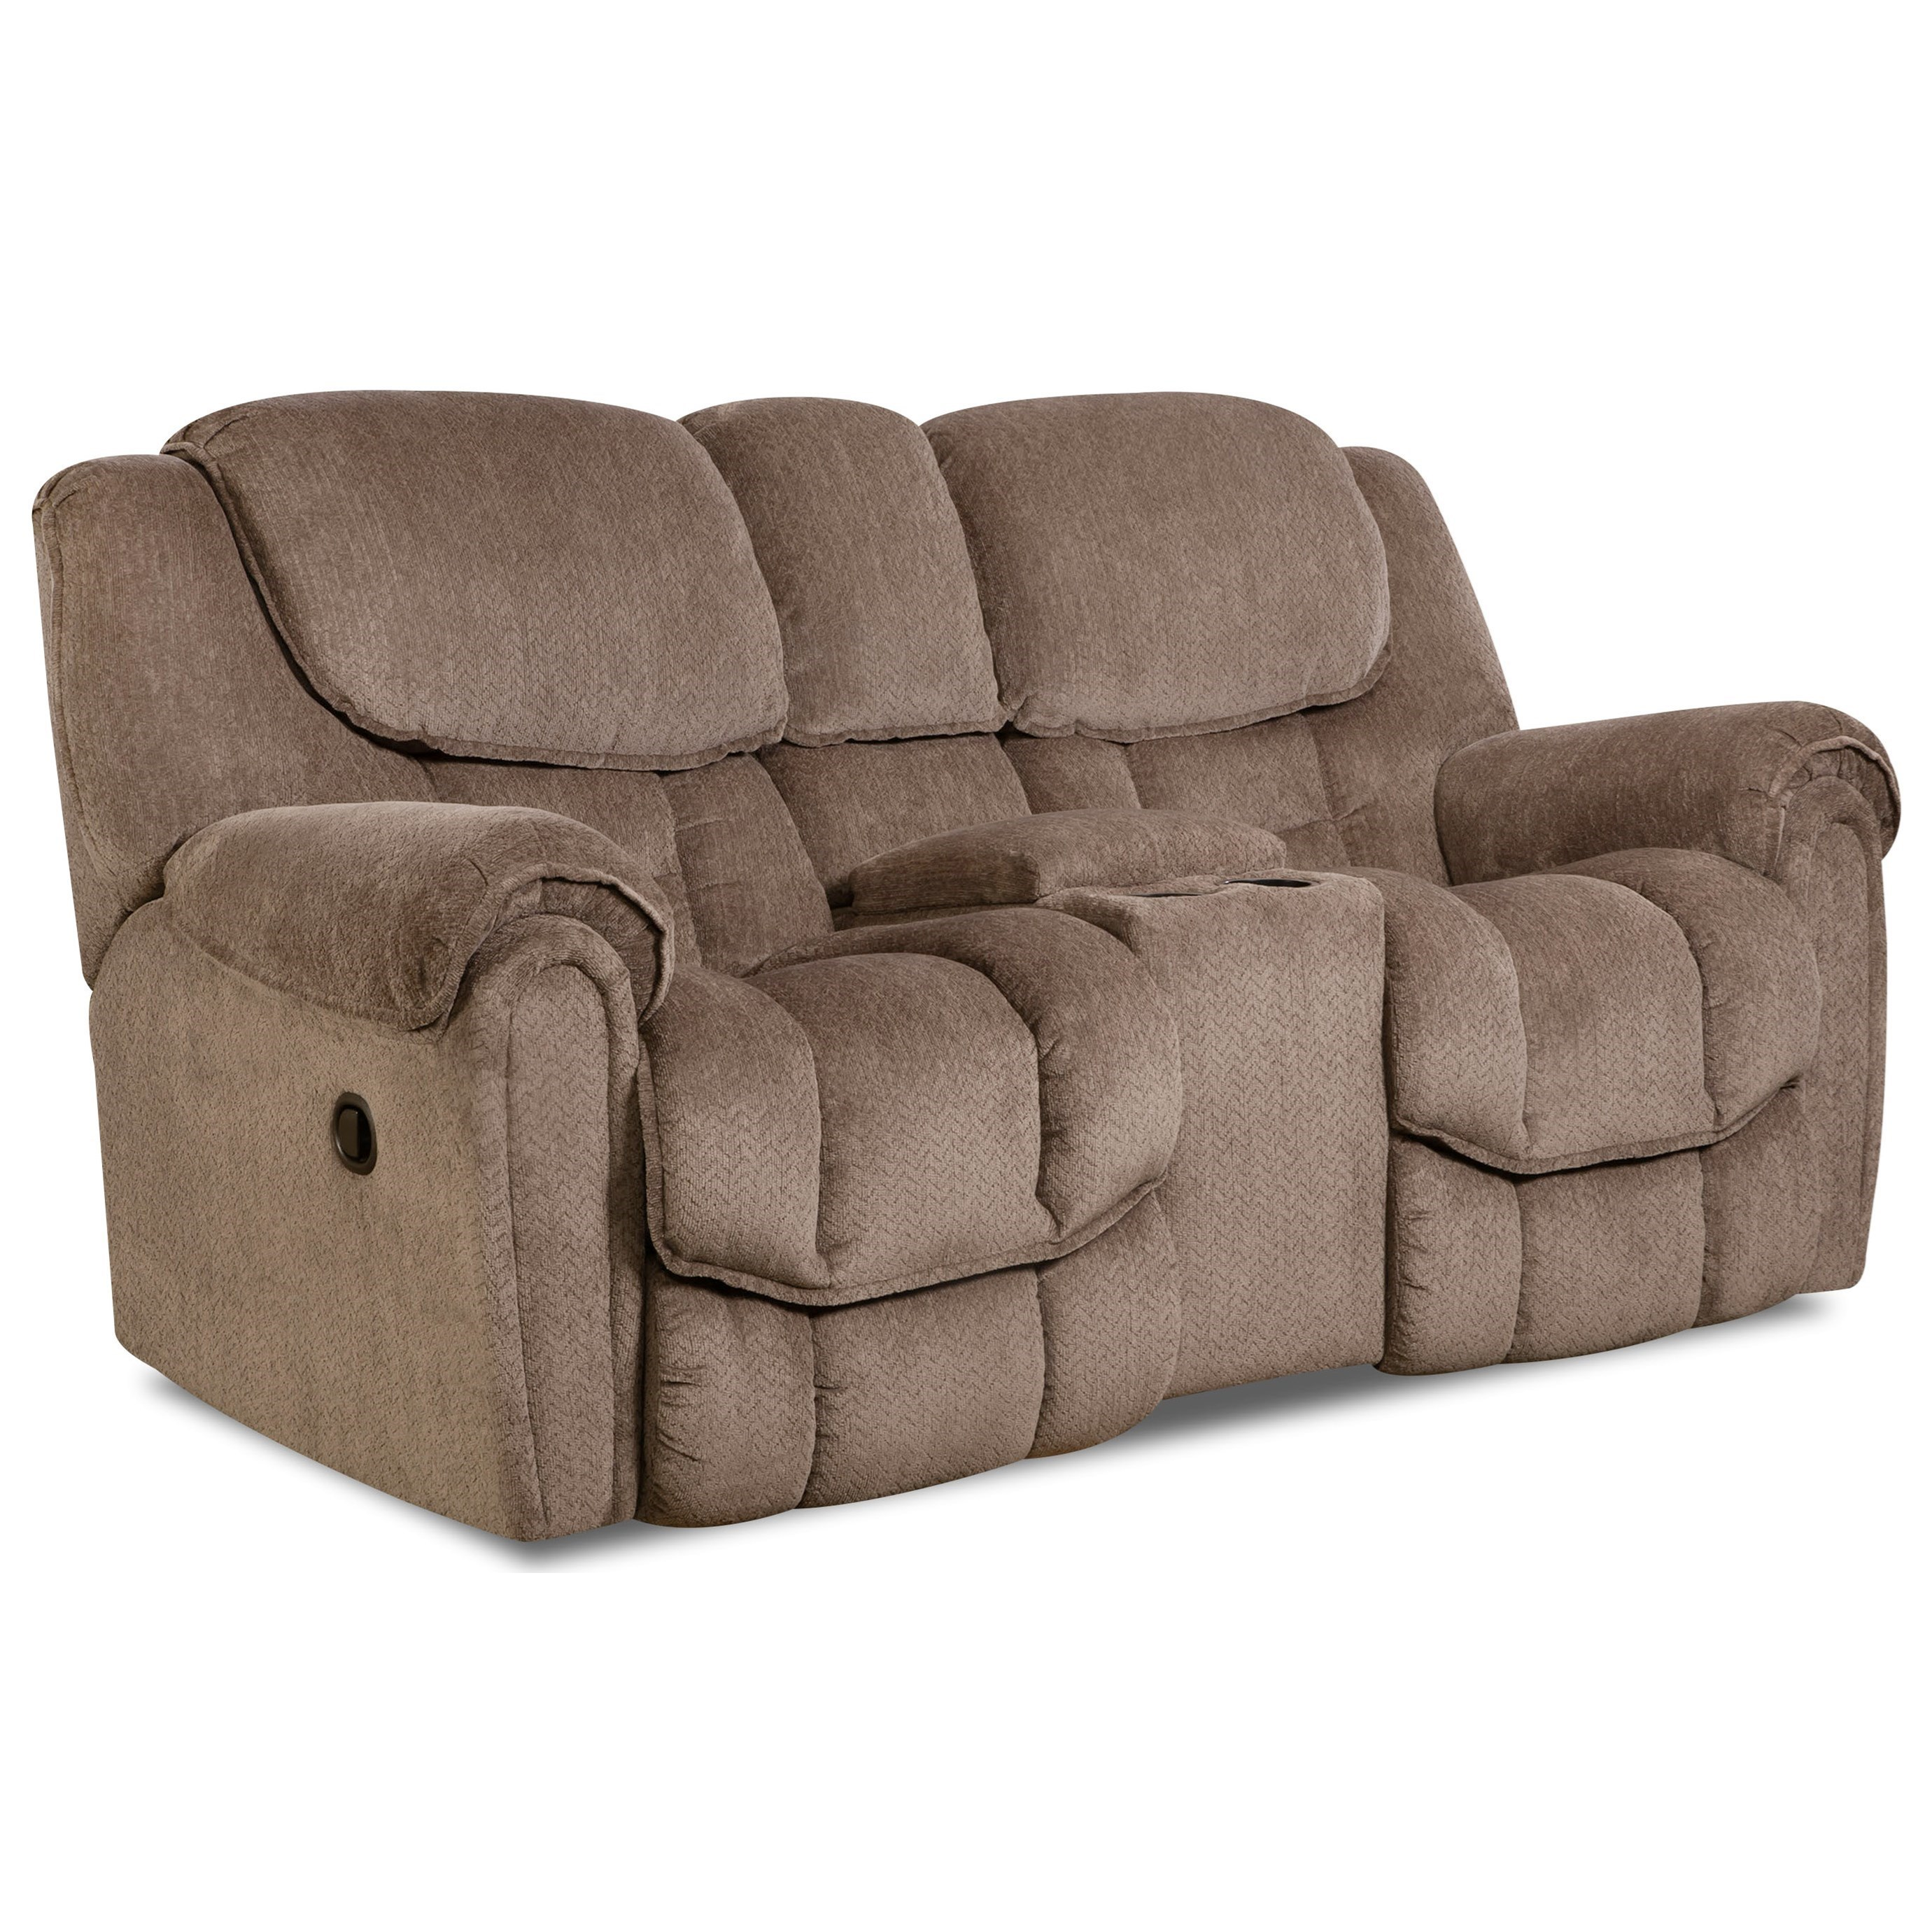 Baxter Casual Reclining Loveseat With Storage In Arm By Comfort Living